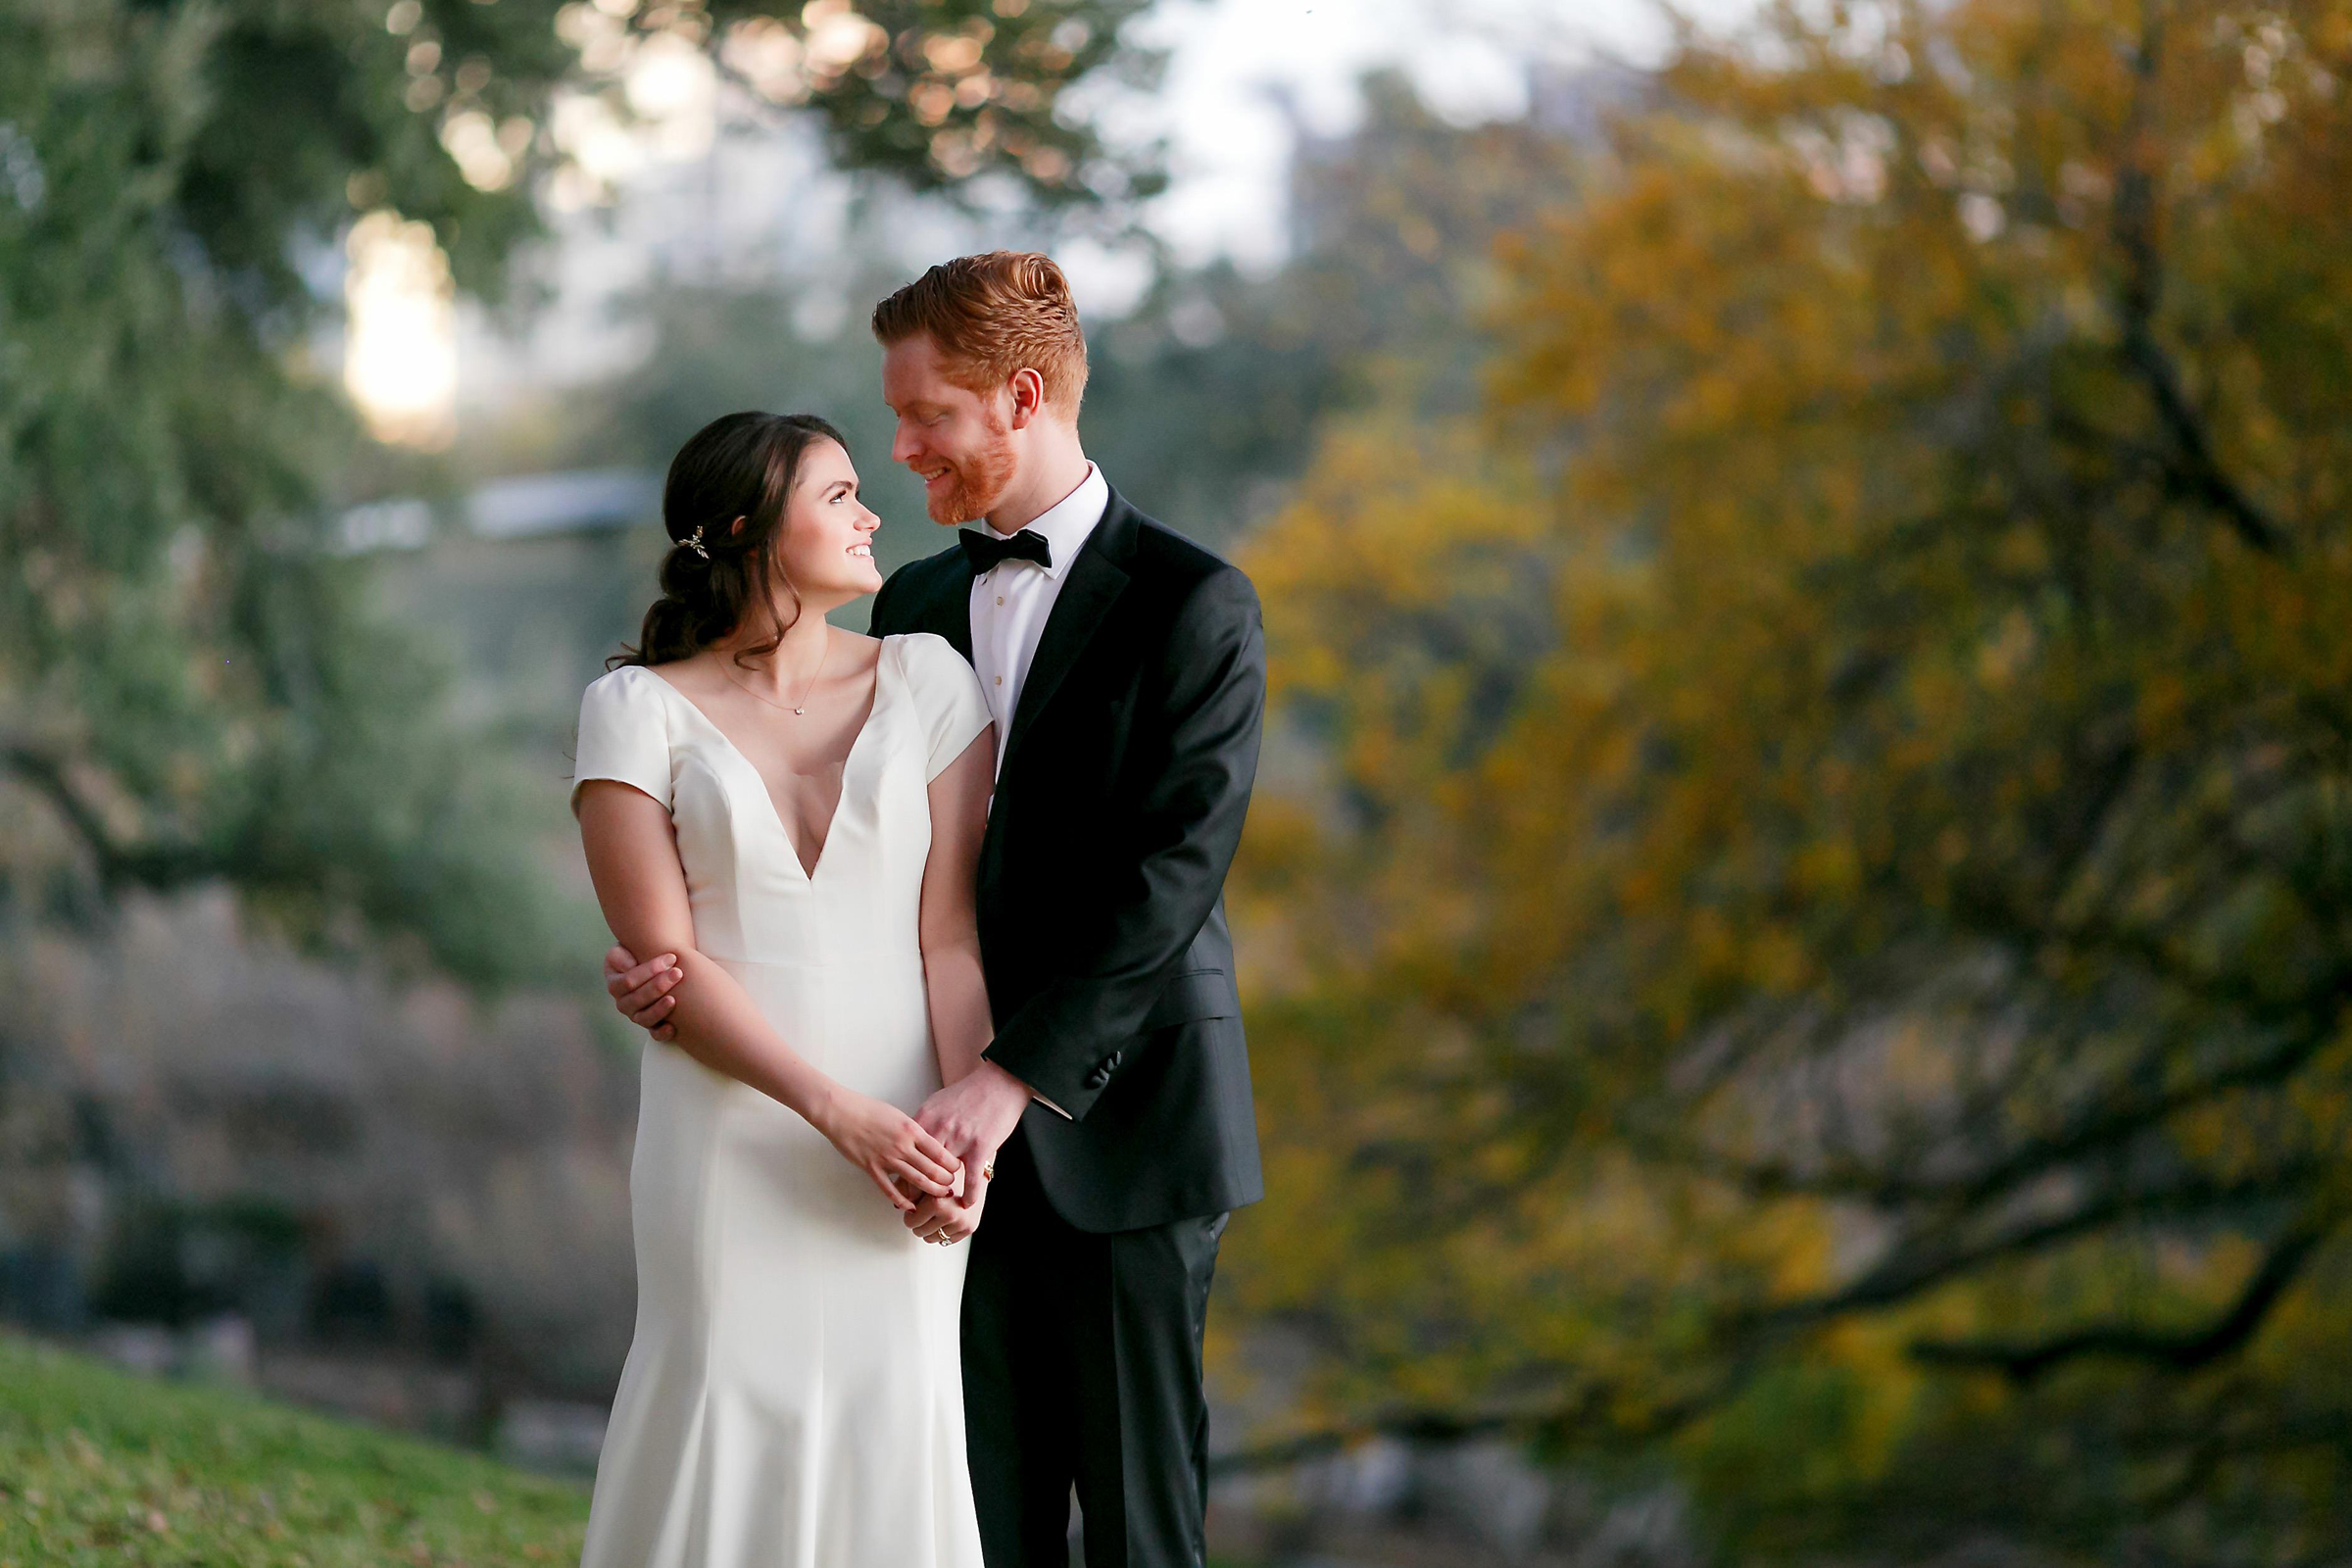 Face to face couple portrait in garden - photo by Jenny DeMarco Photography